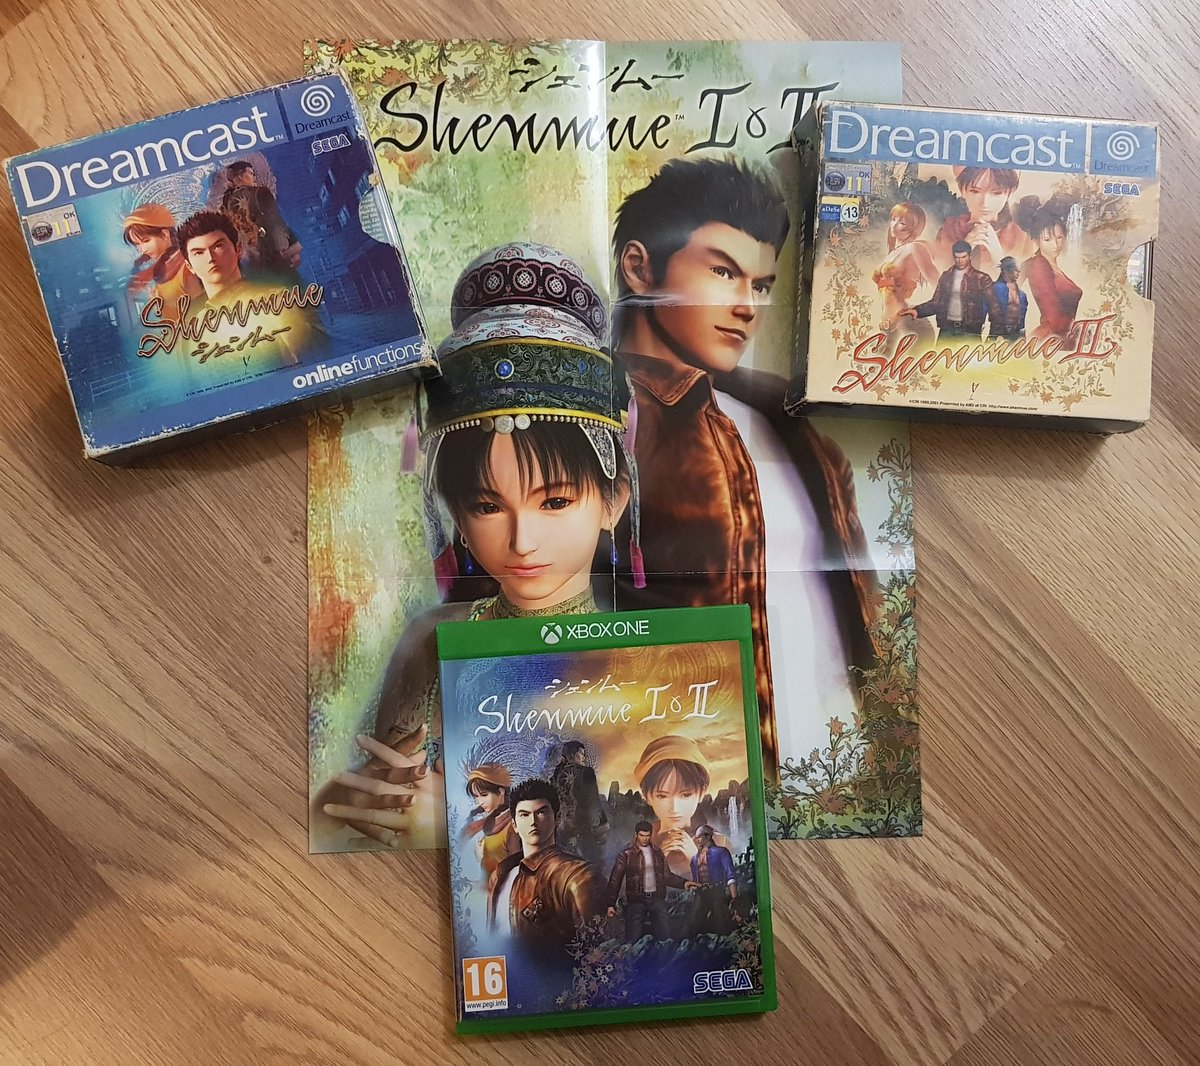 Having just finished the HD versions, fallen in love with them all over again and seen the amazing new footage of #Shenmue3, I couldn't do #ItsThinkingThursdays today without Shenmue and Shenmue 2, two very special games that'll forever be favourites. #Shenmue #ShareYourGames